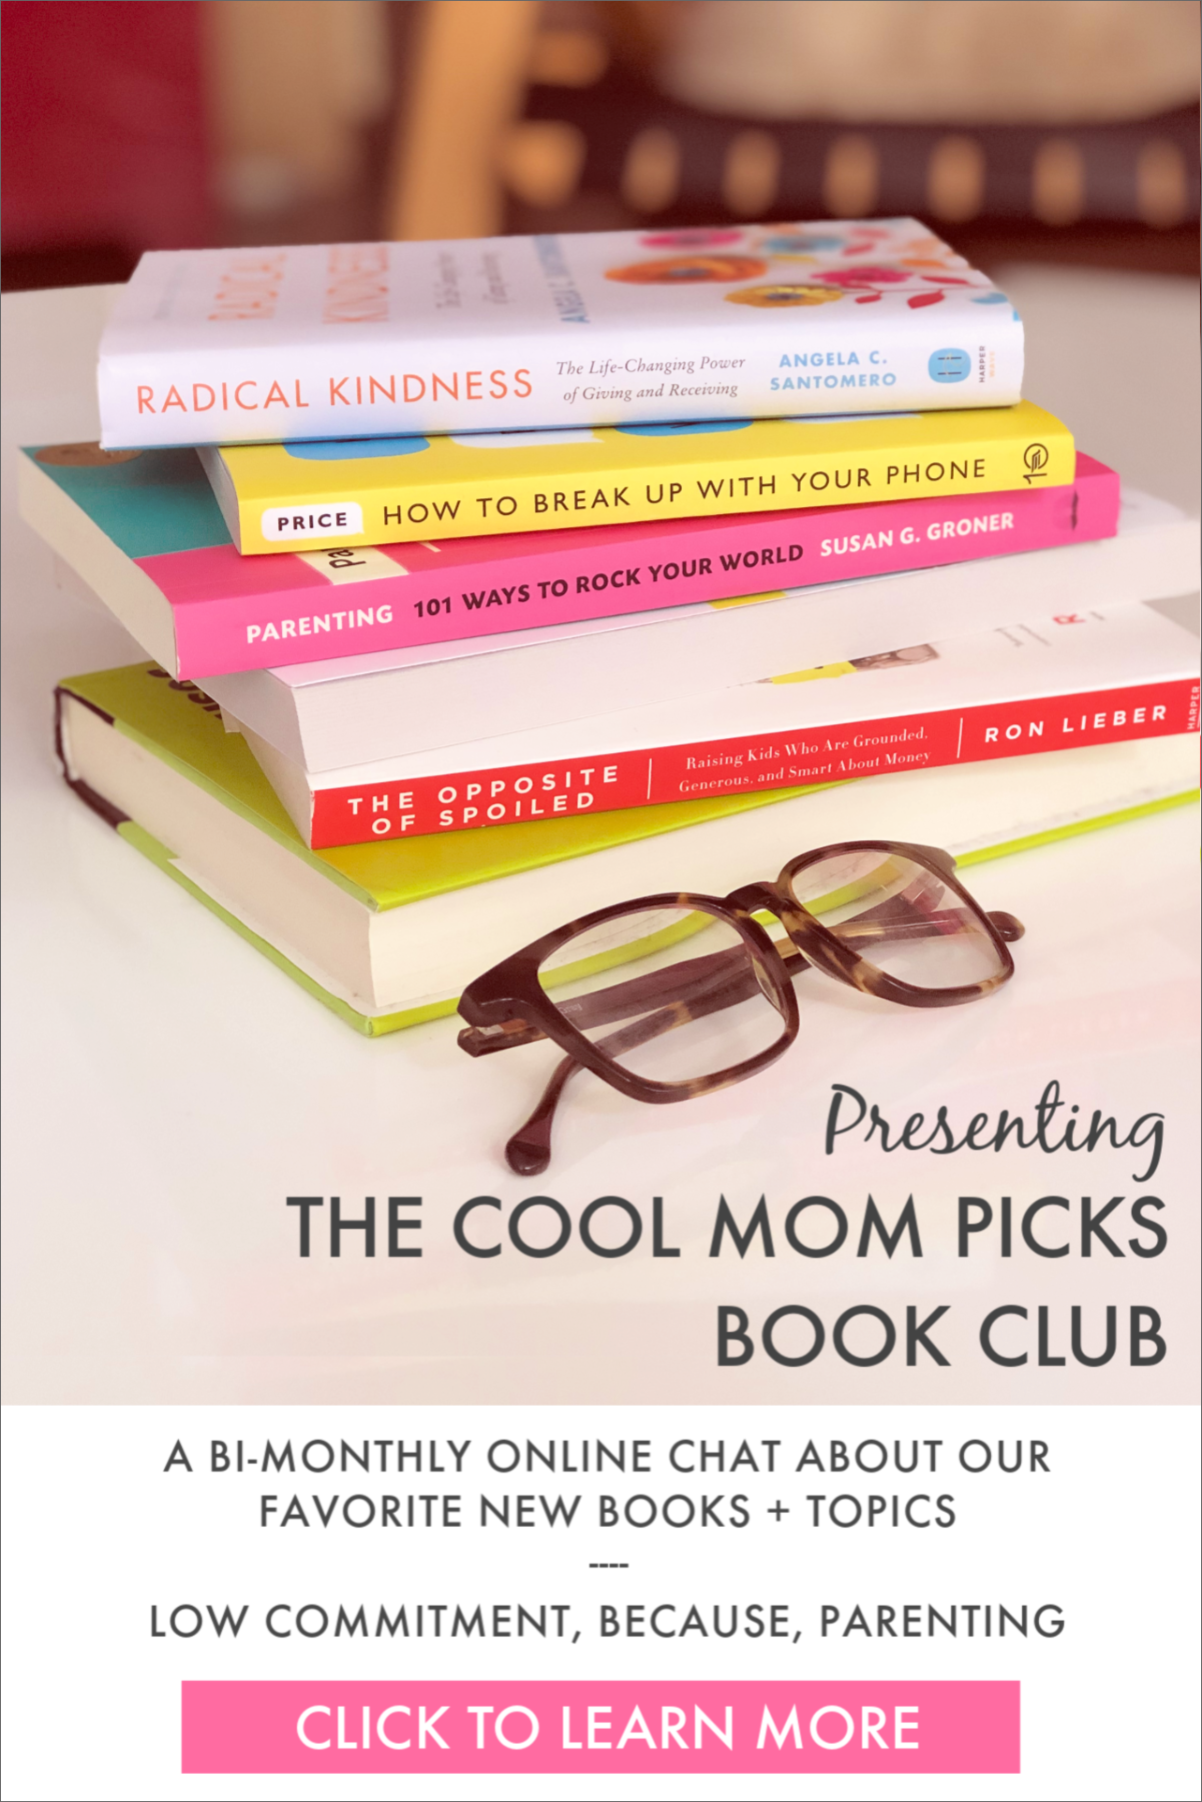 The Cool Mom Picks Book Club